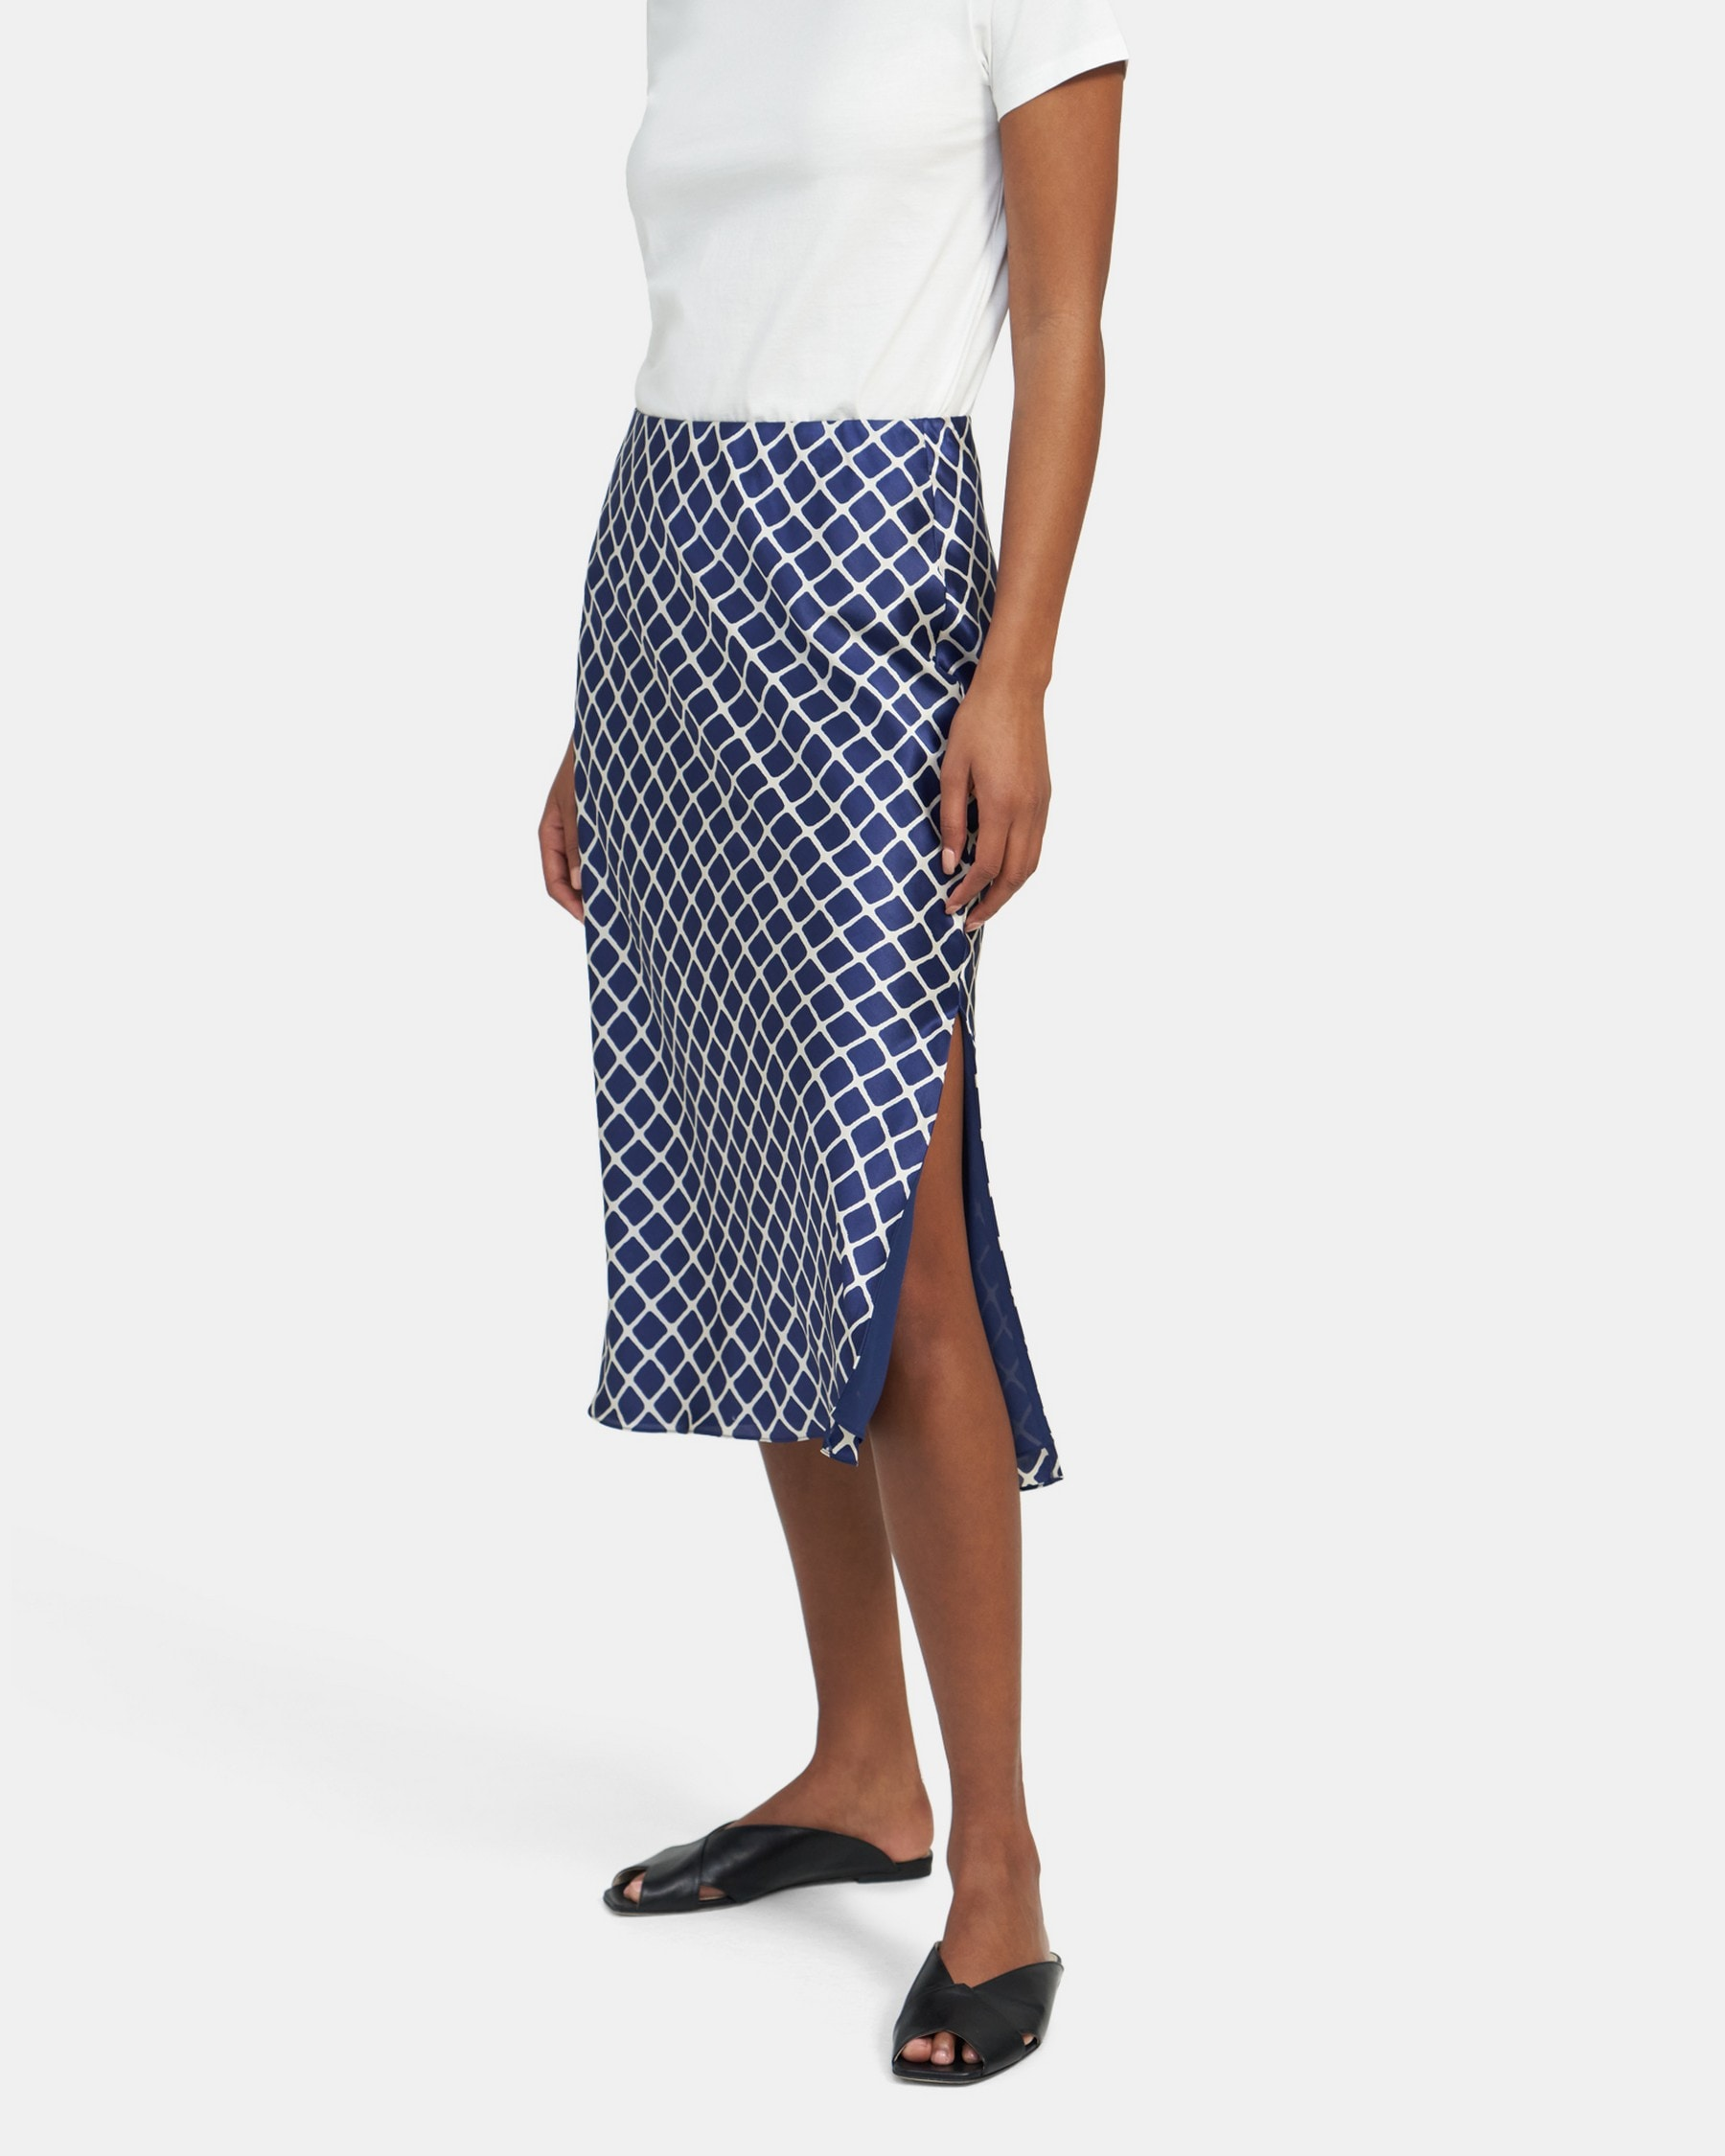 Theory Side Slit Skirt in Tile Printed Satin